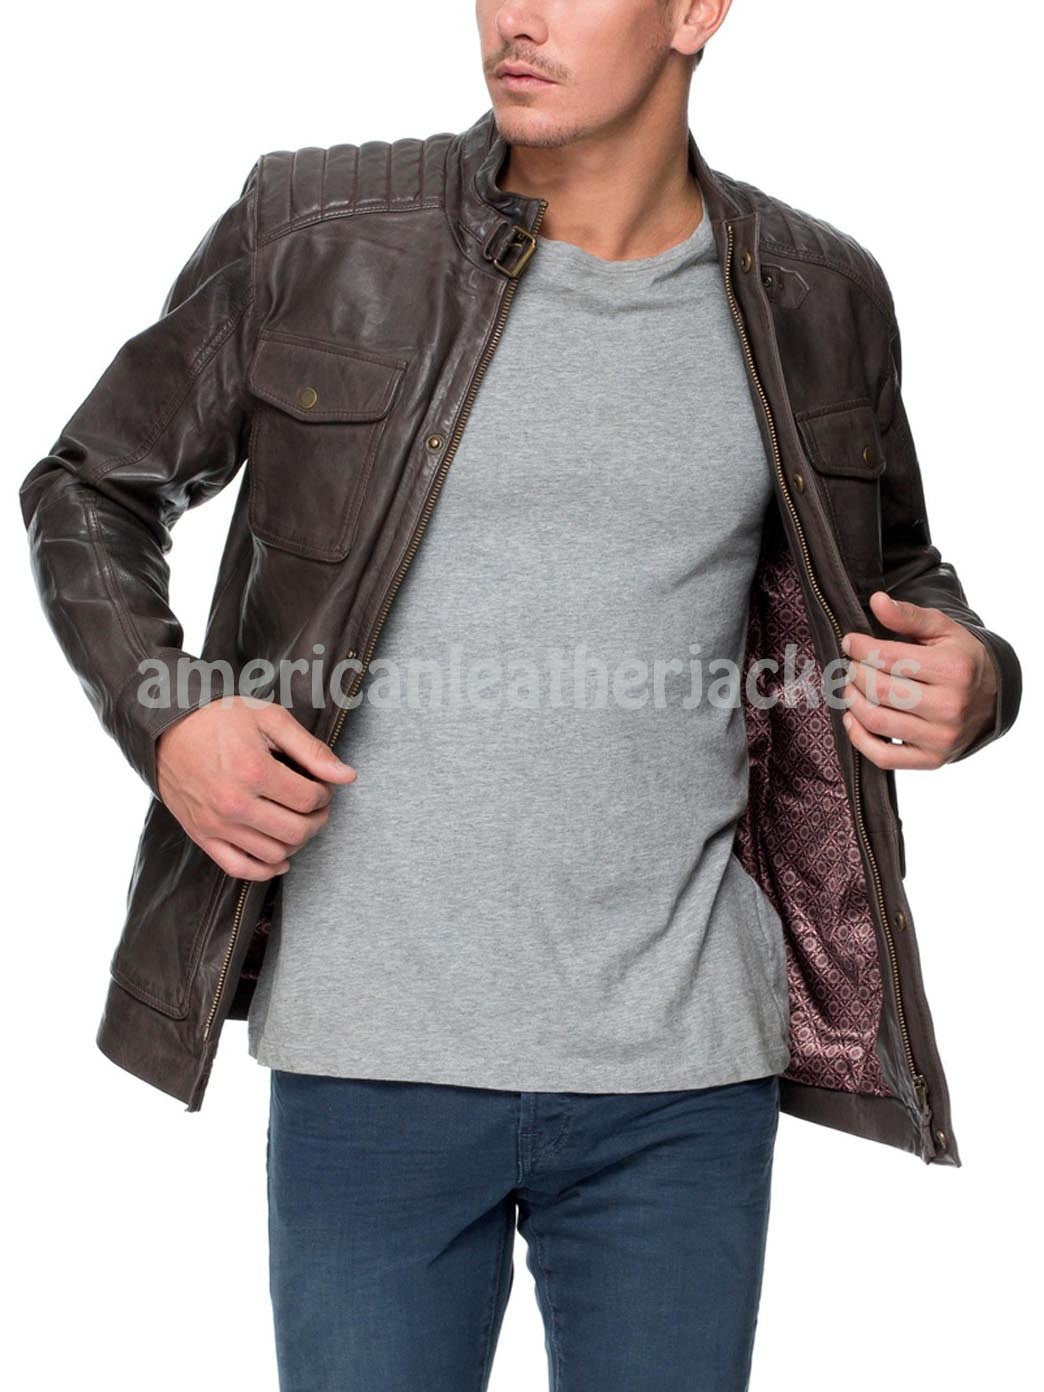 Corporate Style Men Leather Jacket